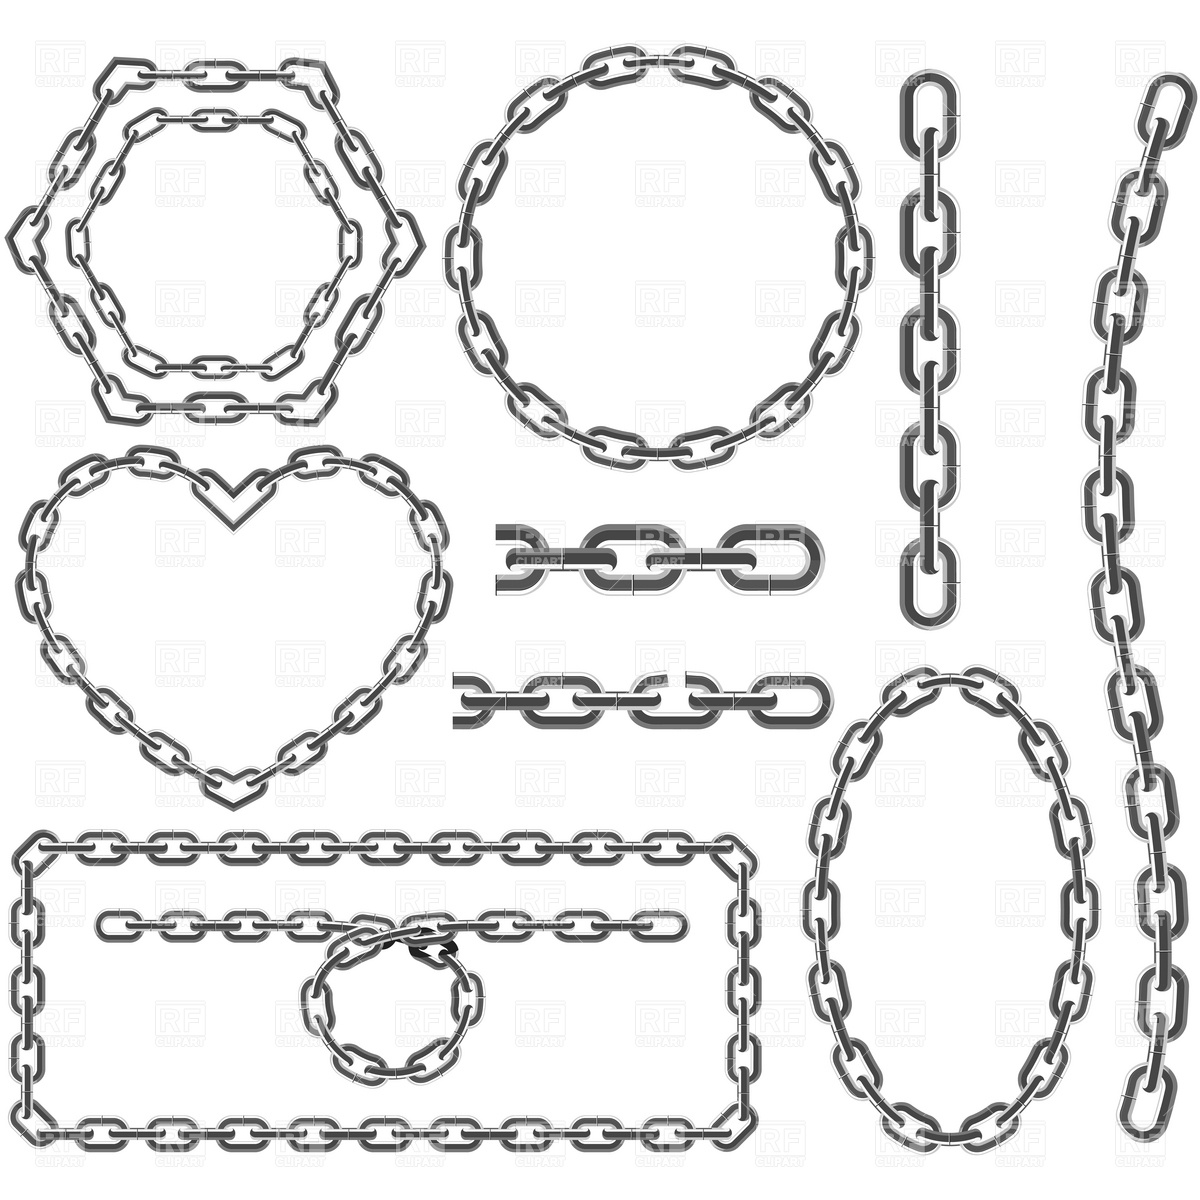 Chain clipart drawing. At getdrawings com free